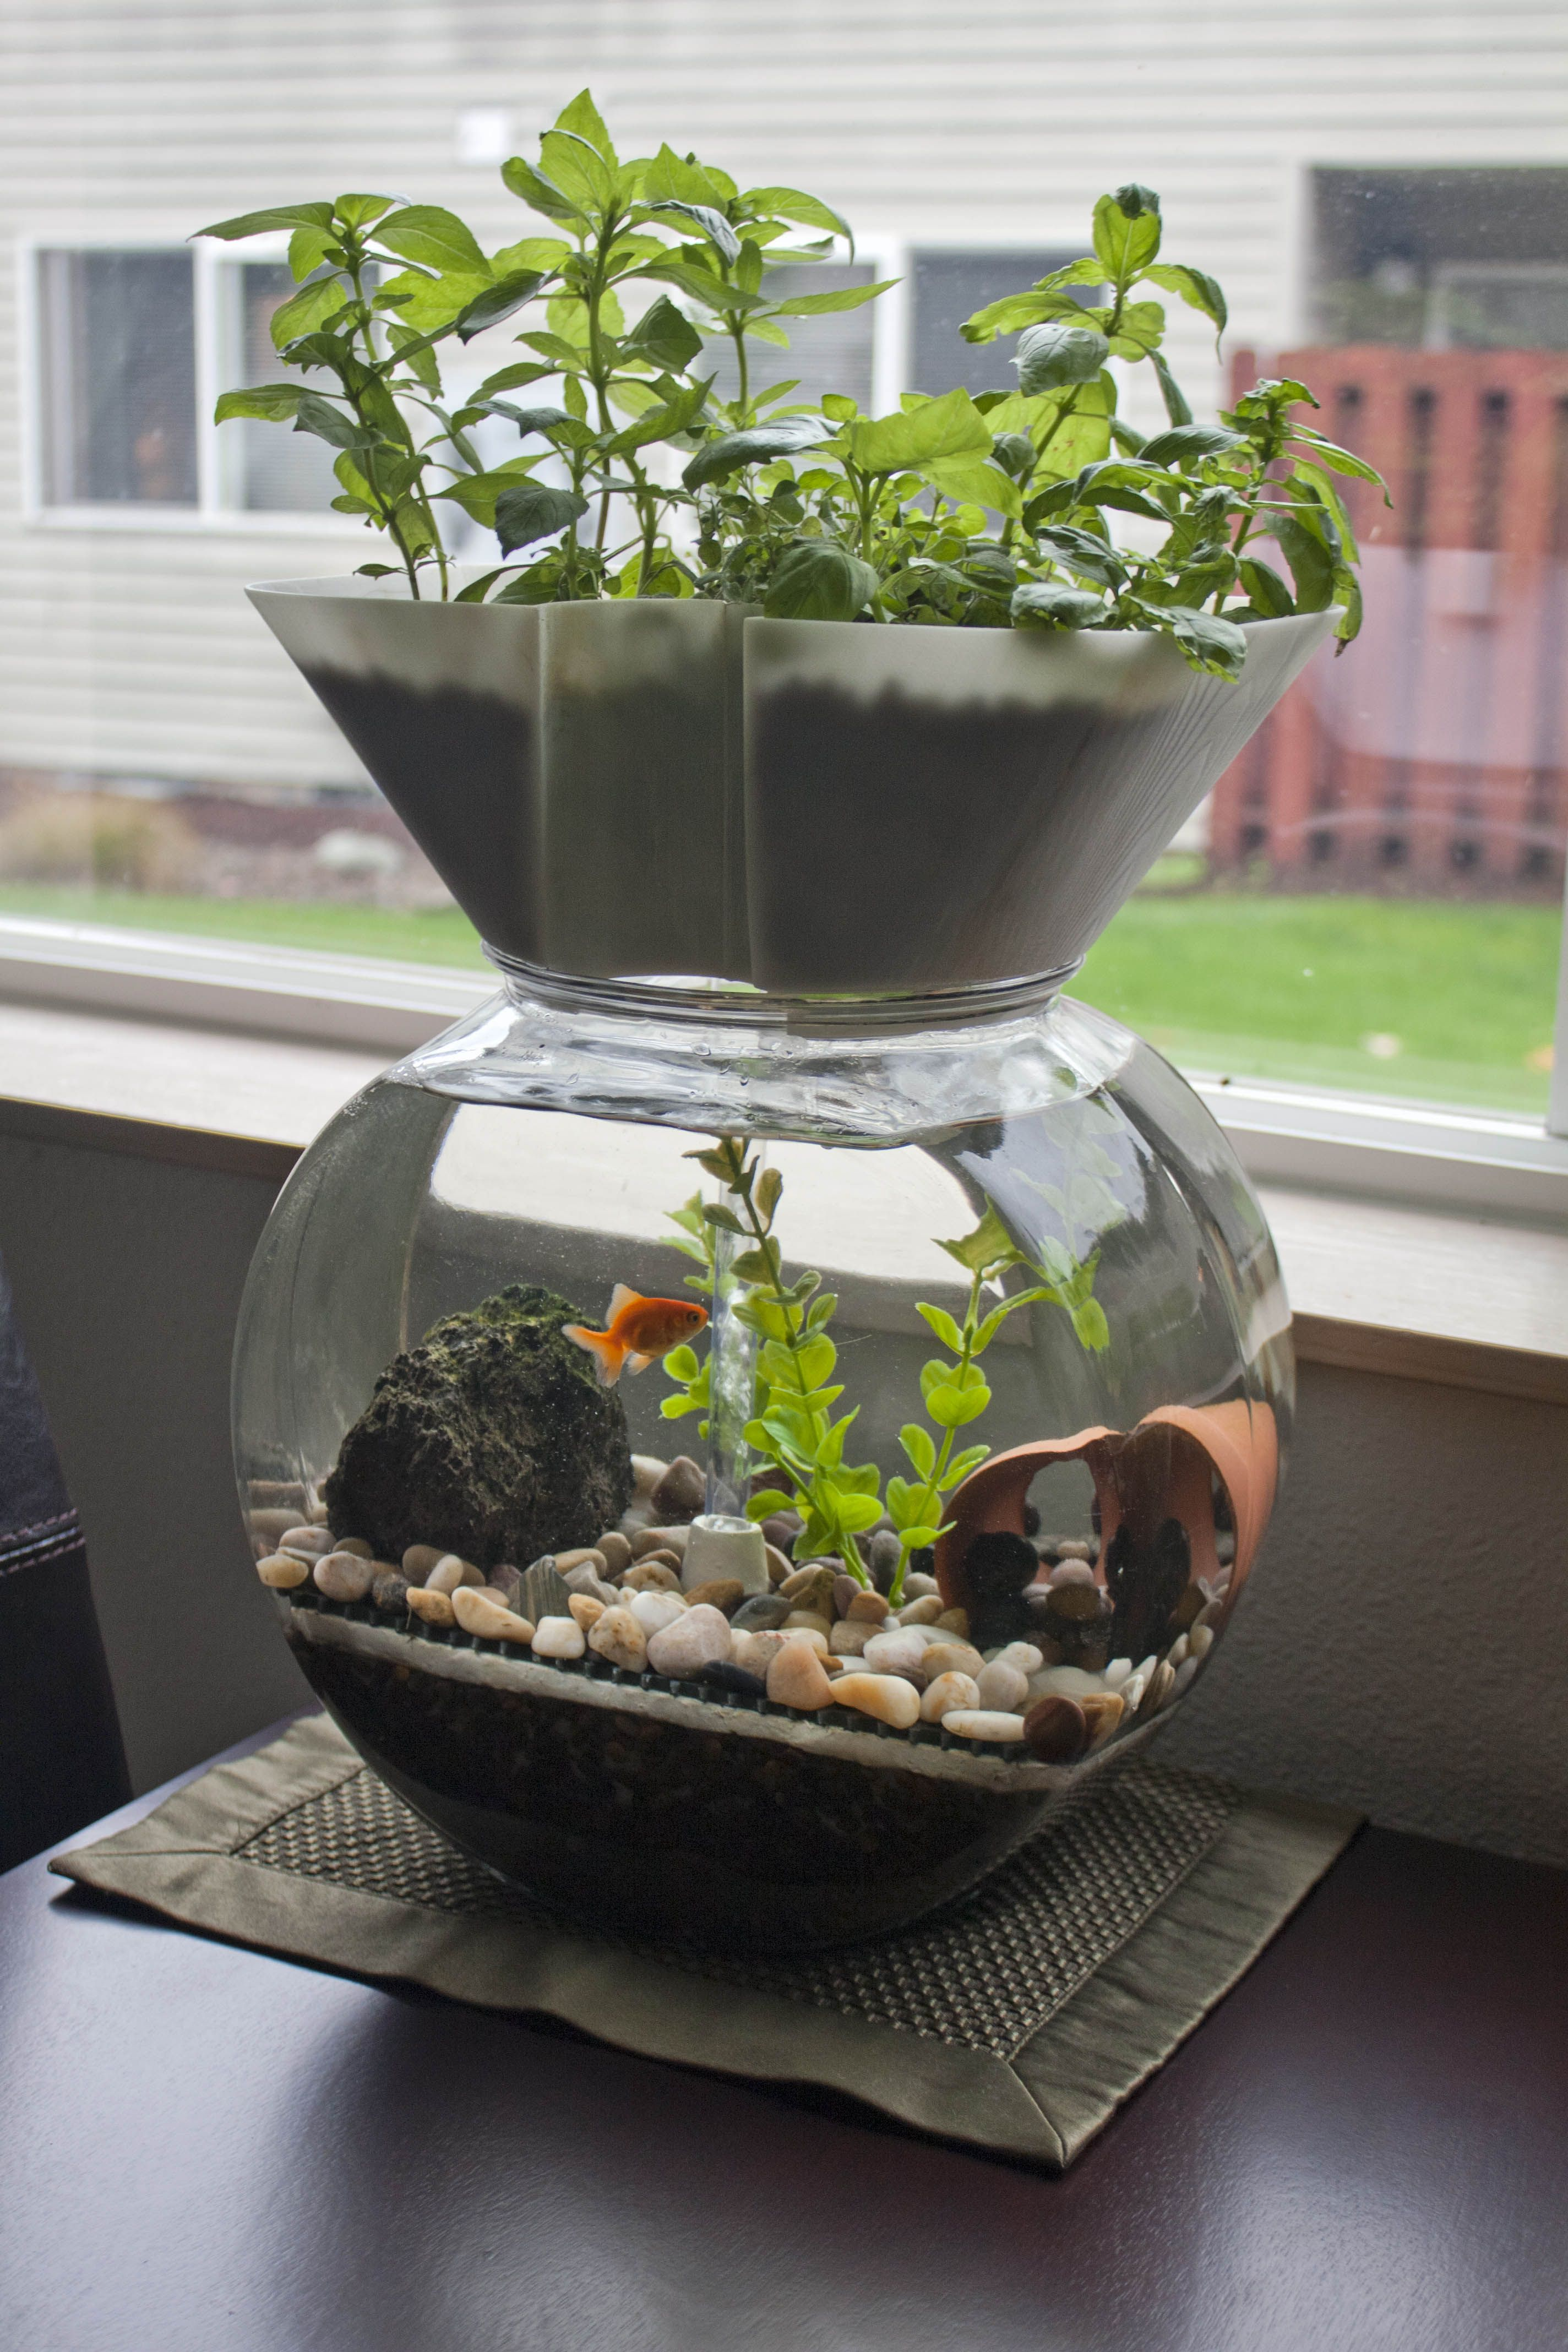 How To DIY Aquaponics The How To DIY Guide on Building